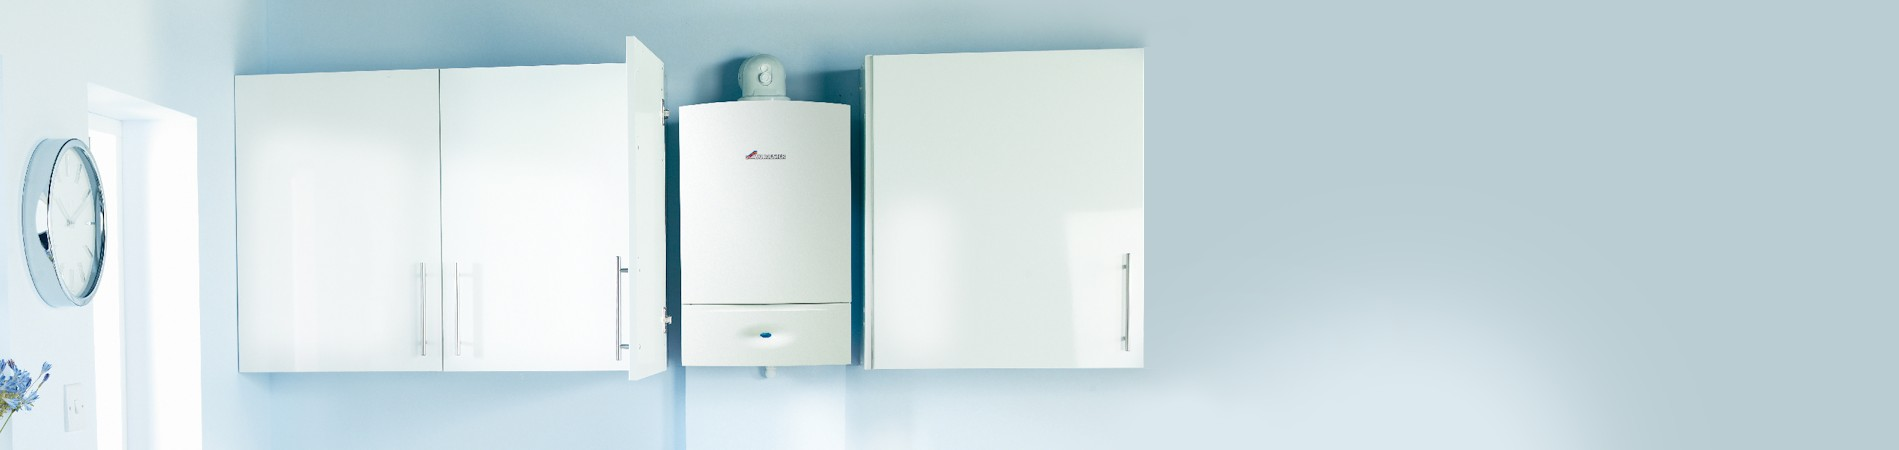 Gas Boiler Servicing| Oill Boiler Repair | AJB Services - Heating ...